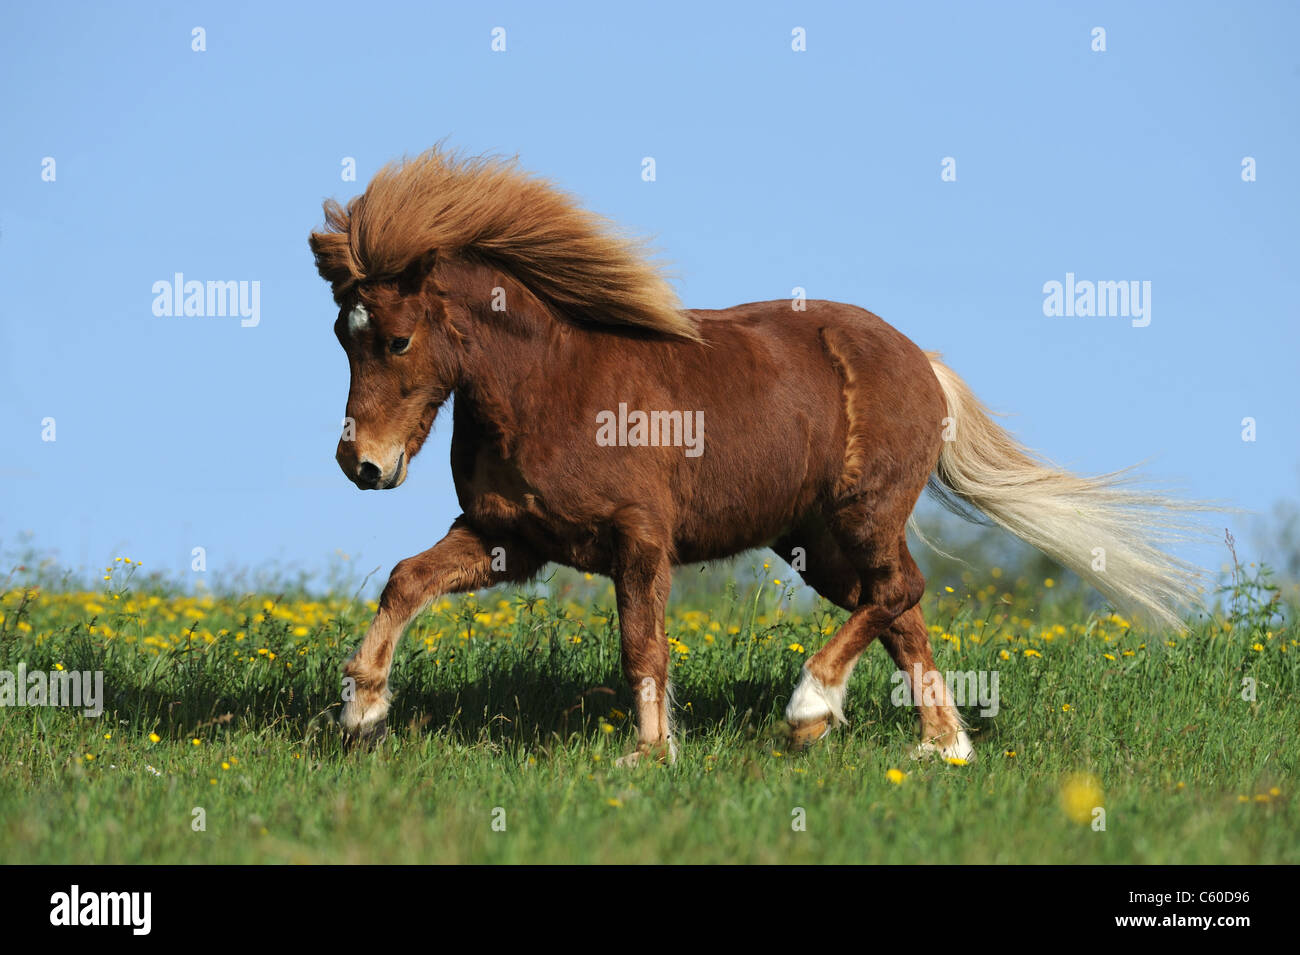 Icelandic Horse (Equus ferus caballus) in a trot on a meadow. Stock Photo